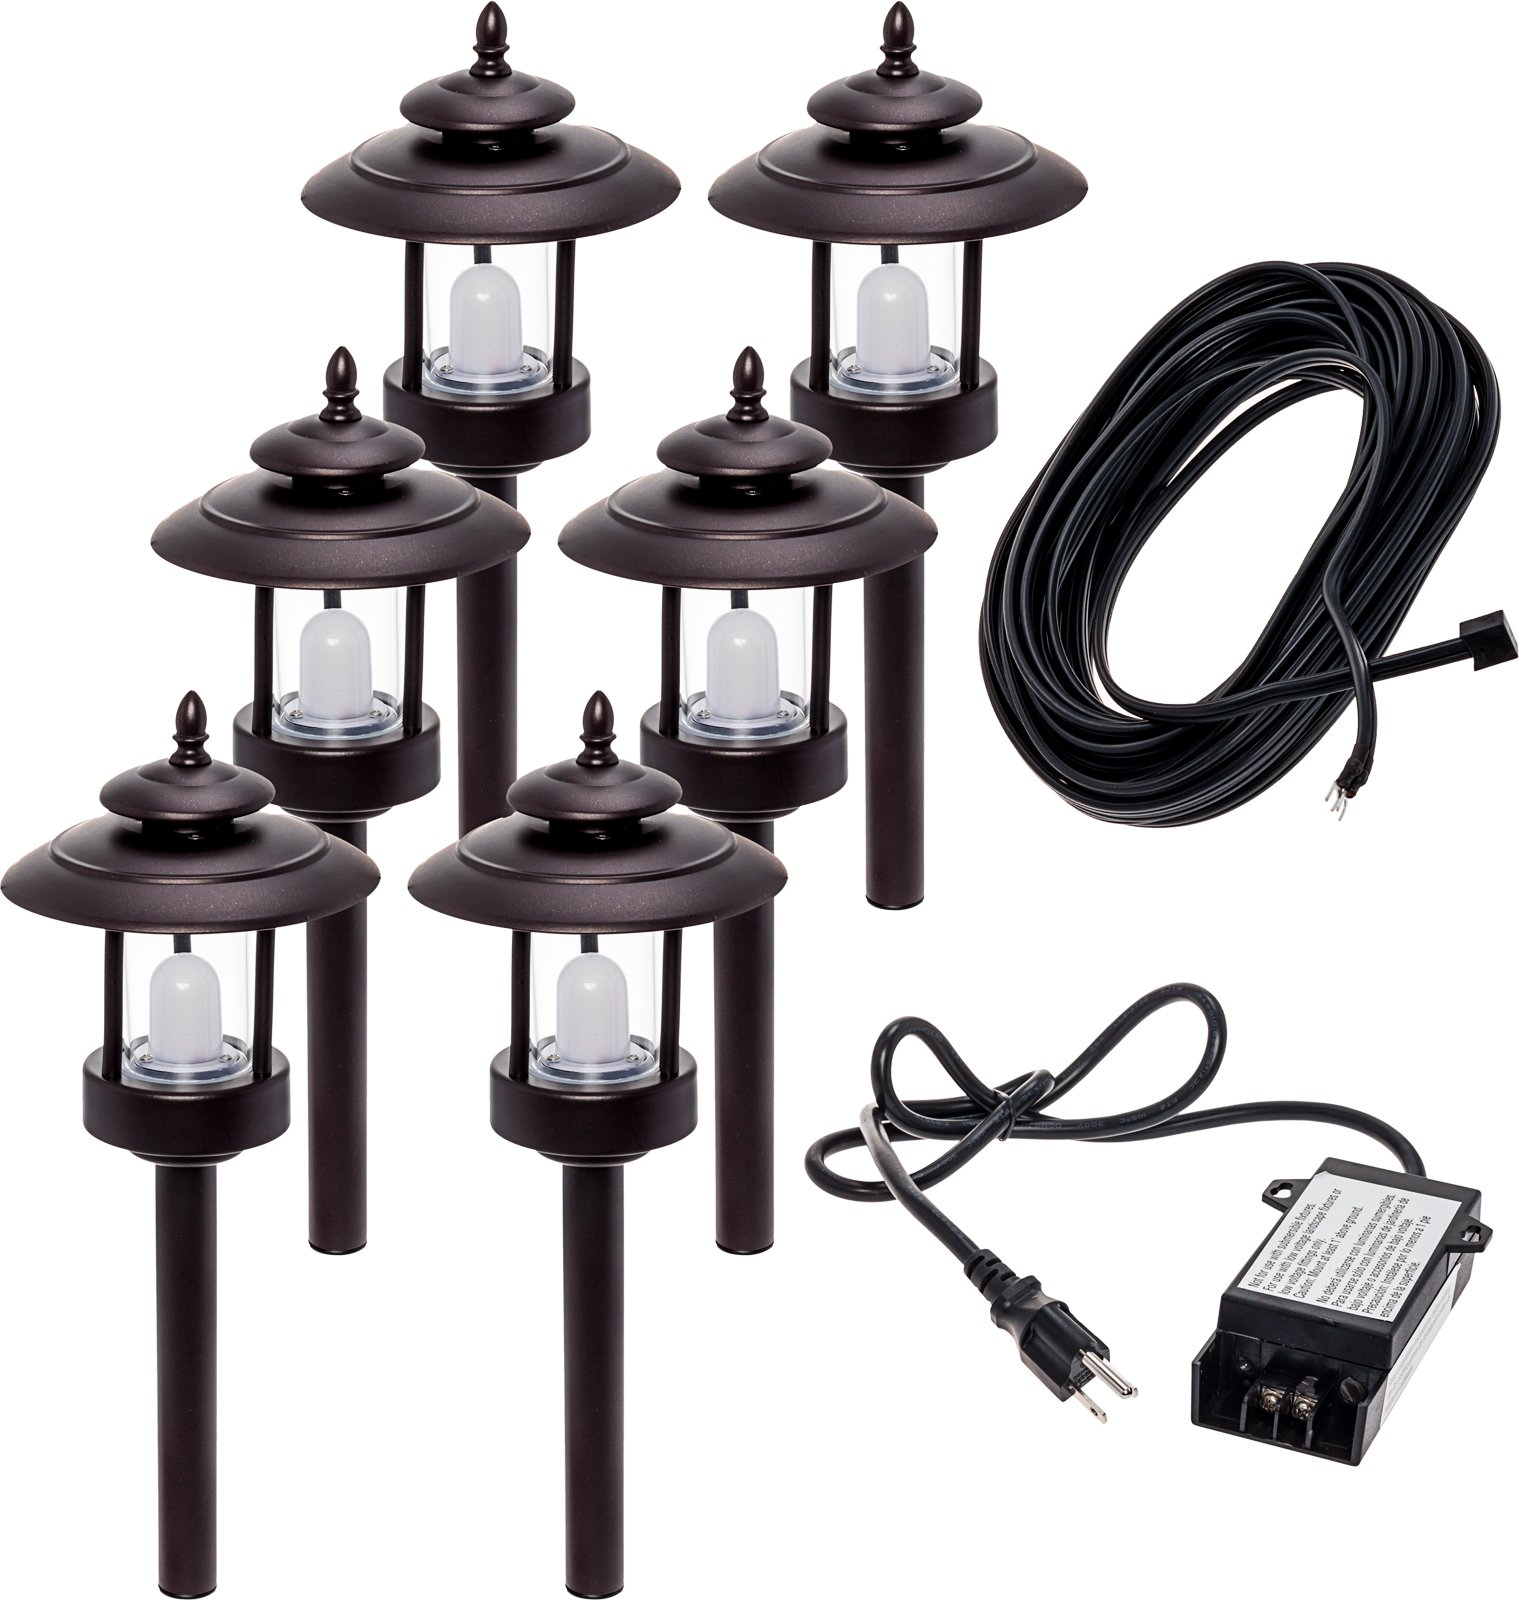 6 Pack Westinghouse 100 Lumen Low Voltage LED Pathway Light Landscape Kit (Bronze) by Westinghouse